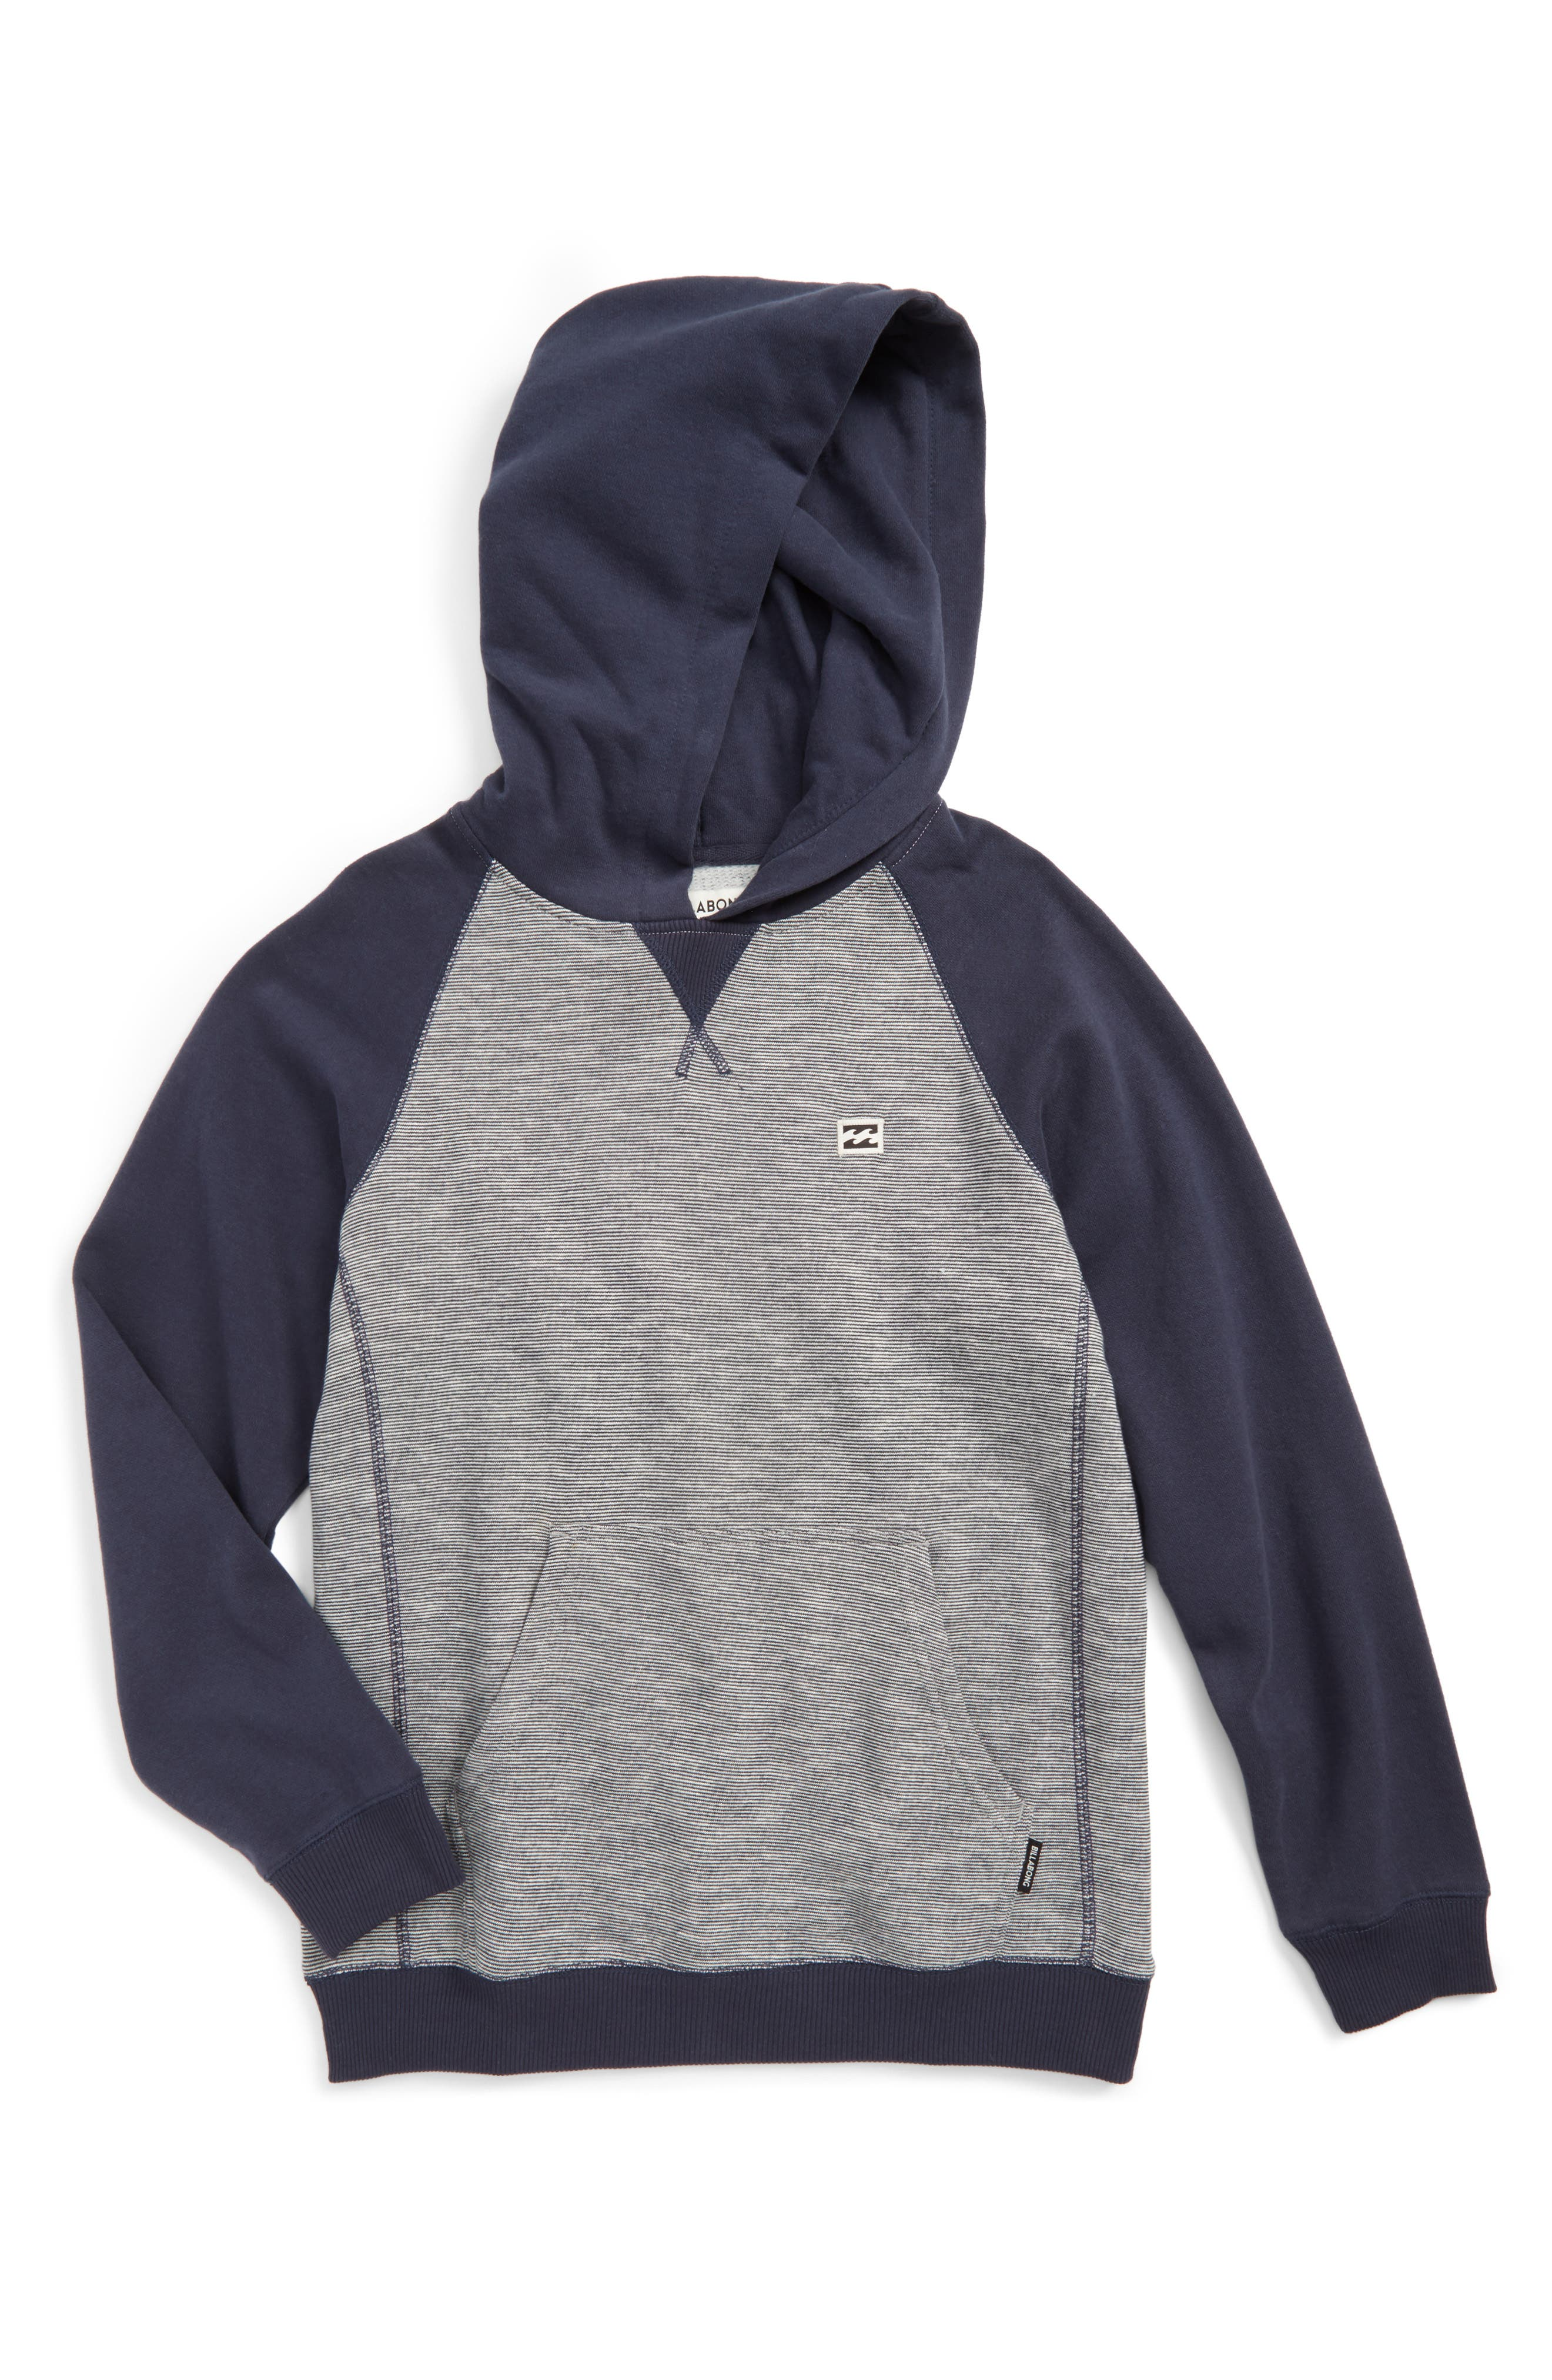 Balance Pullover Hoodie,                         Main,                         color, Navy Heather